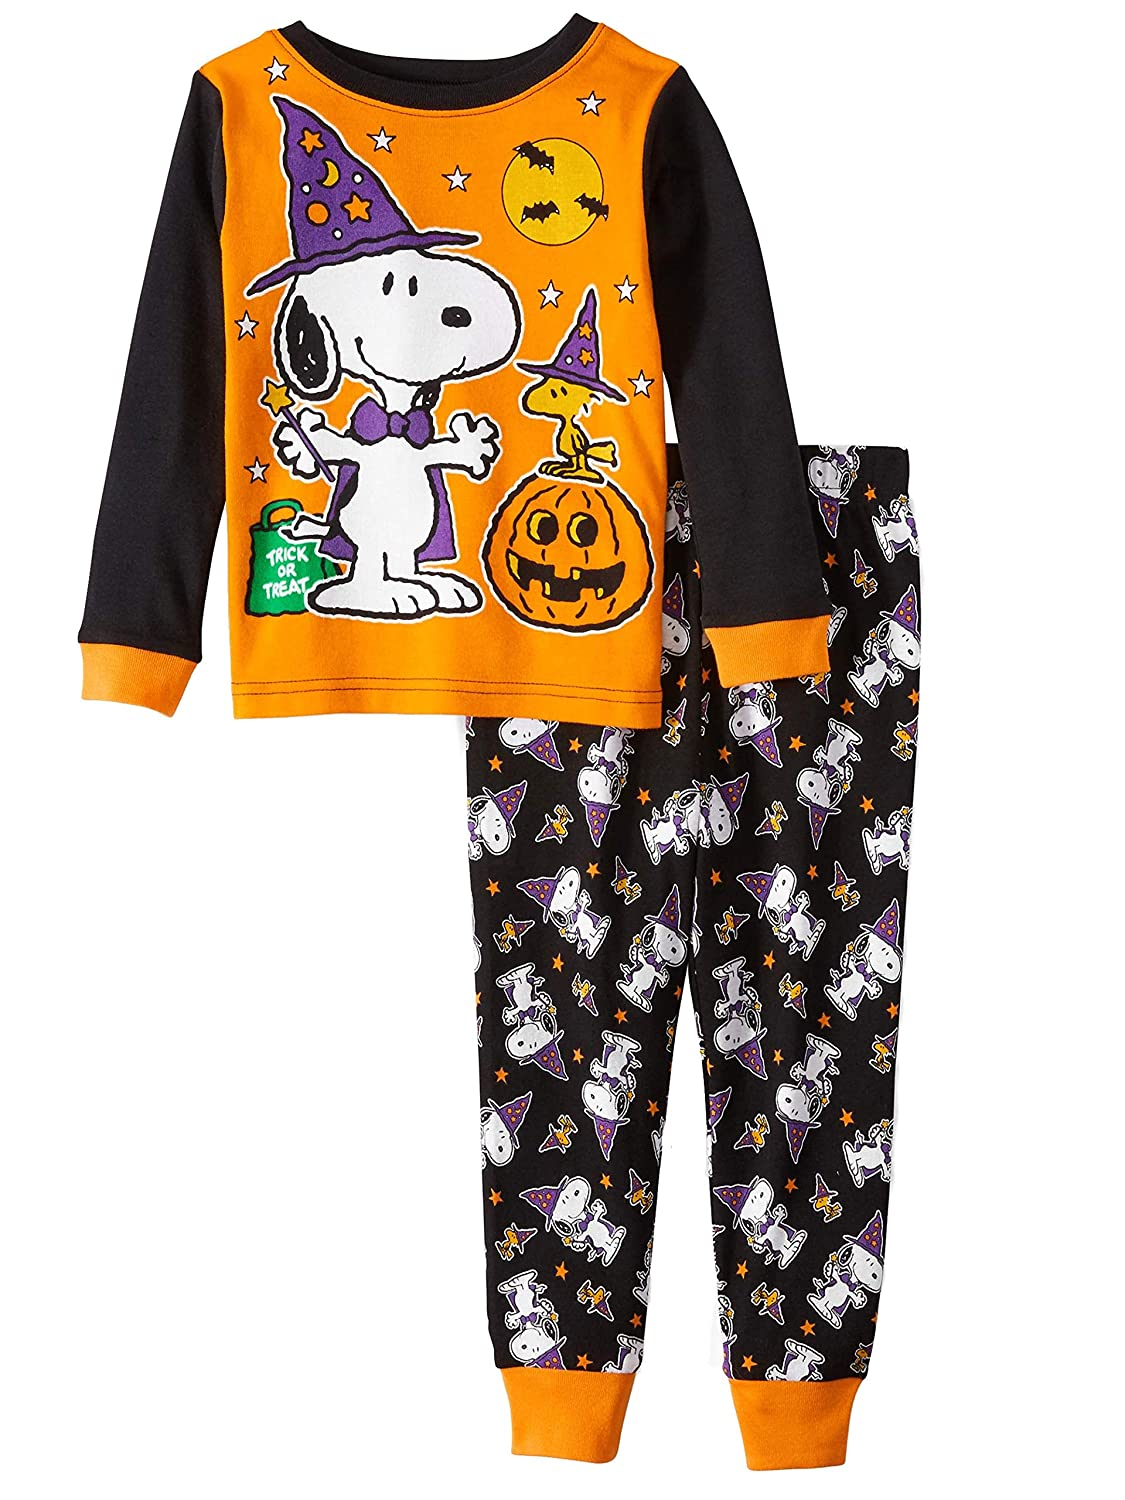 8050524ea9c Peanuts snoopy and woodstock glow in the dark halloween piece toddler boys  pajama set clothing jpg